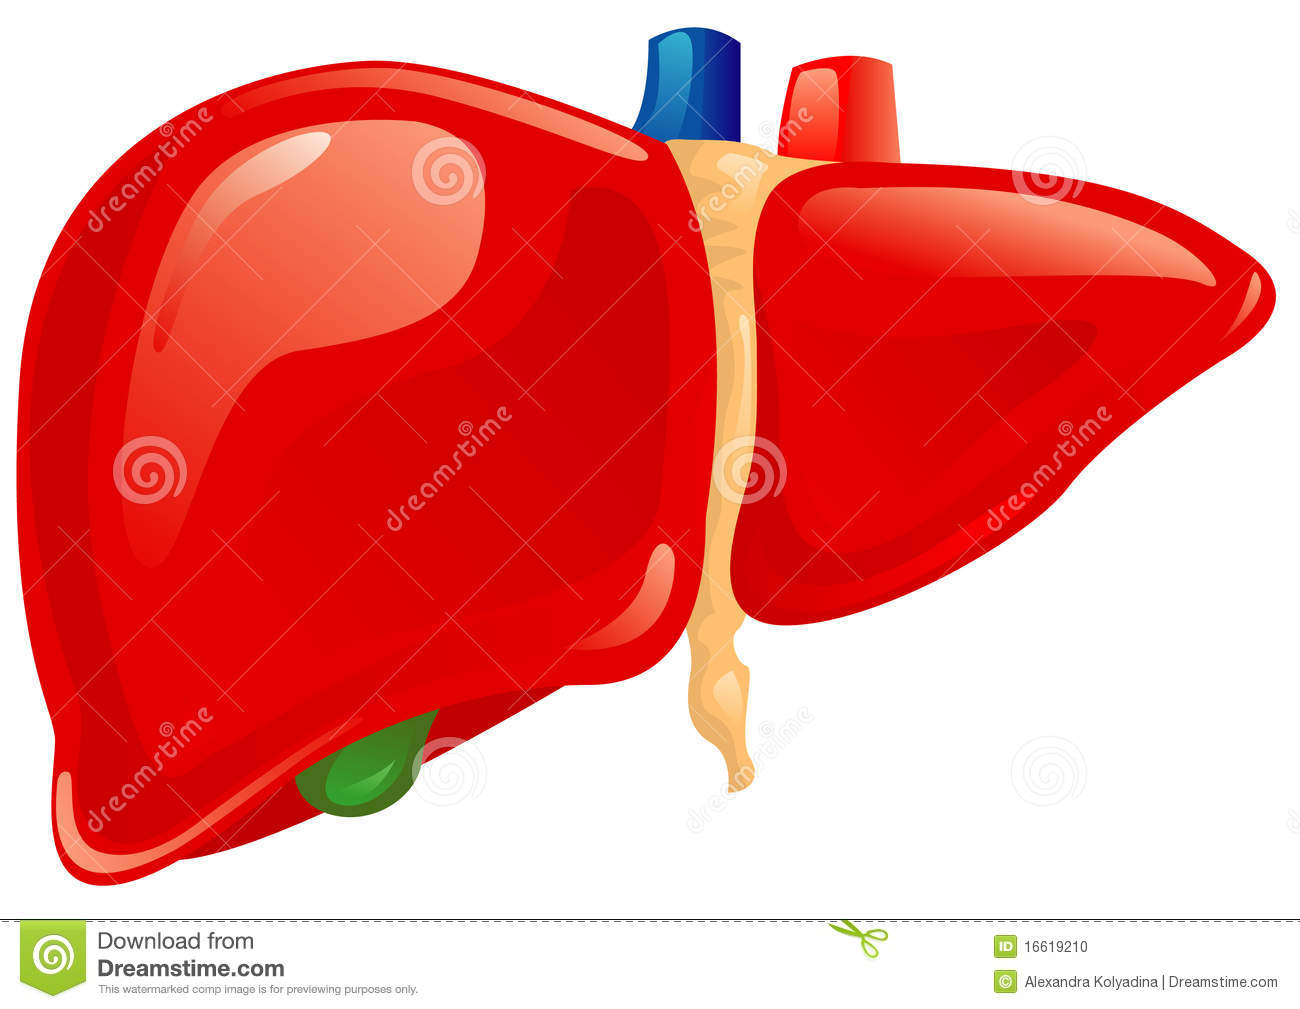 Human liver stock vector. Illustration of spleen, anatomy ...